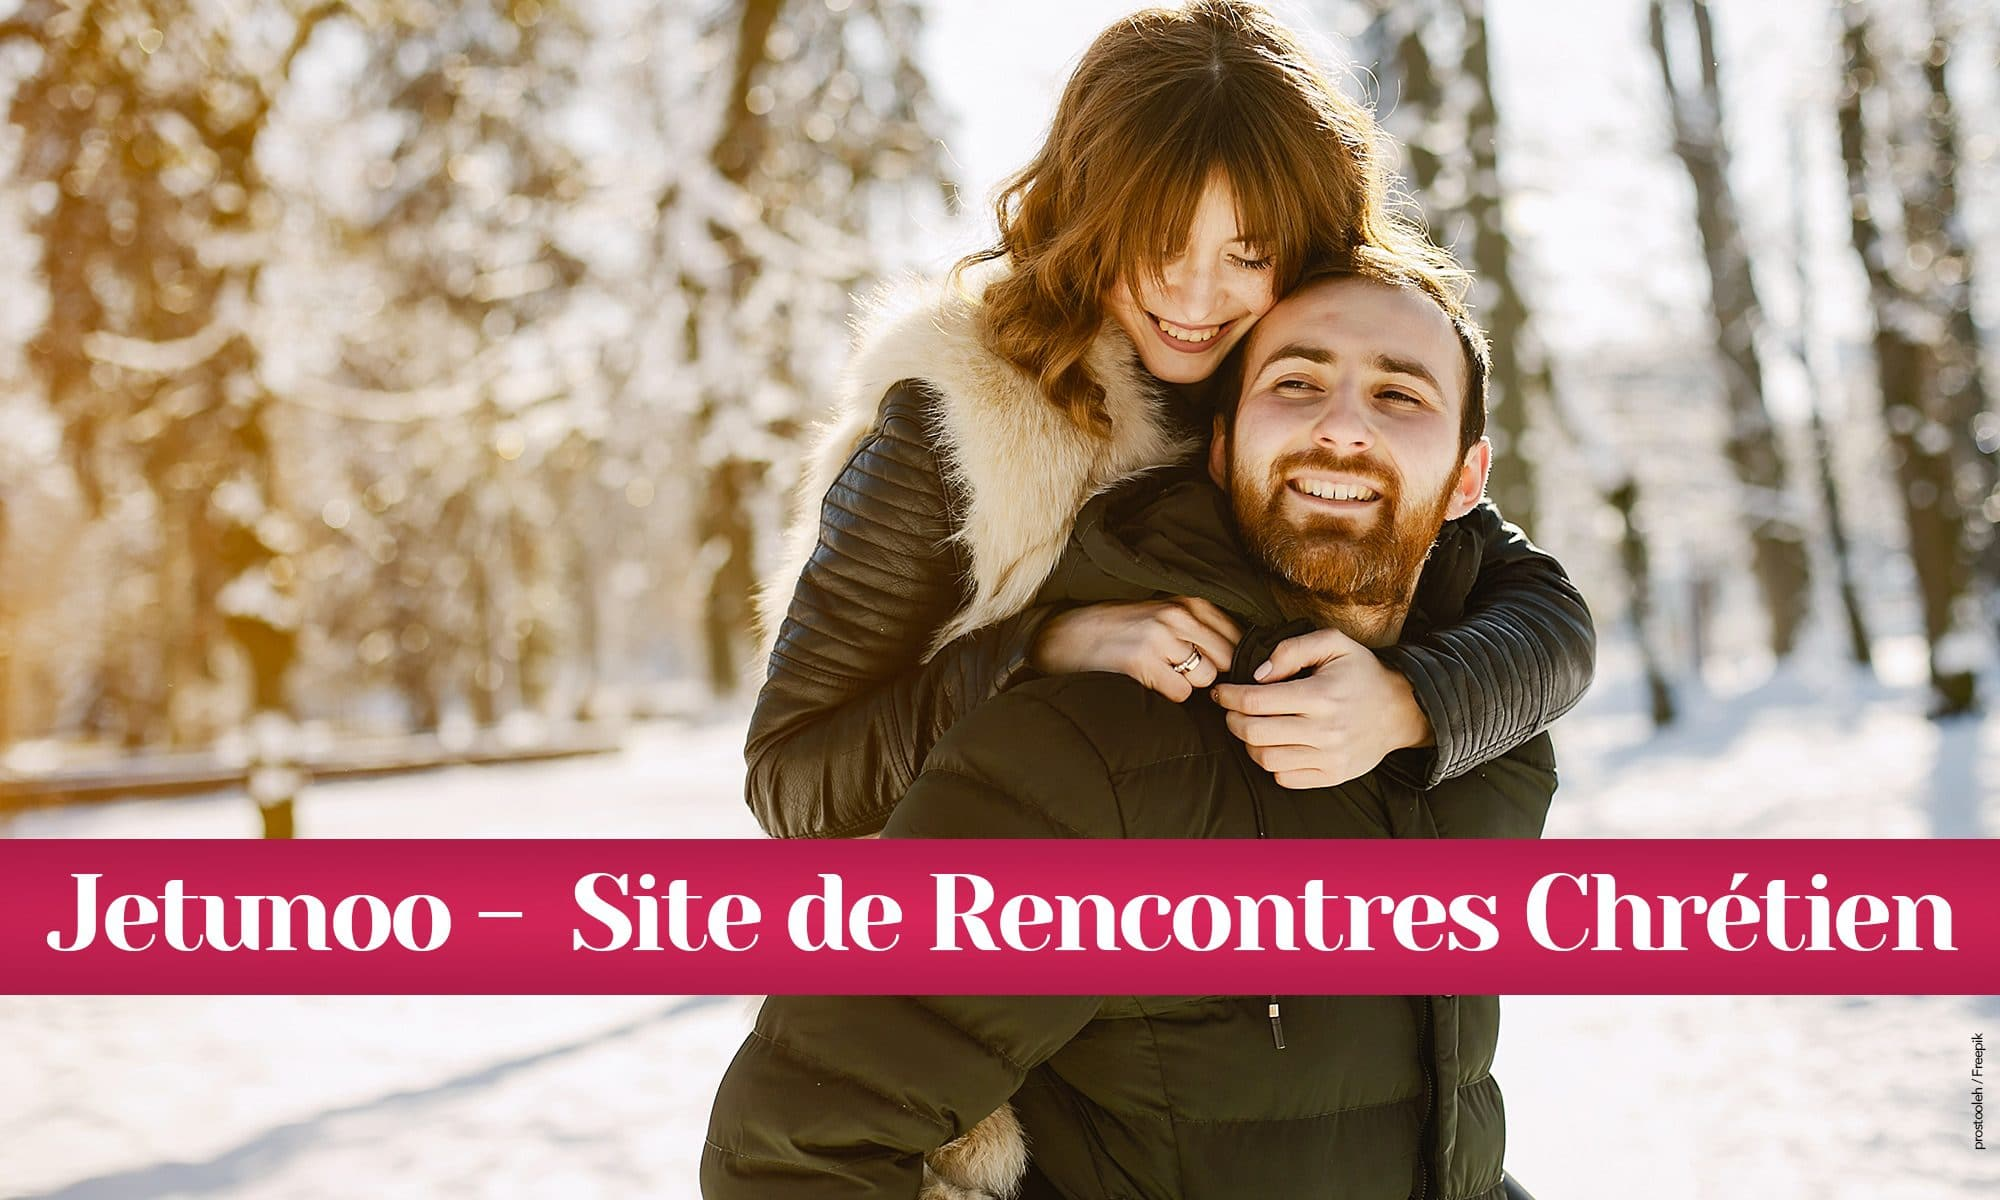 sites de rencontres chretiens protestants